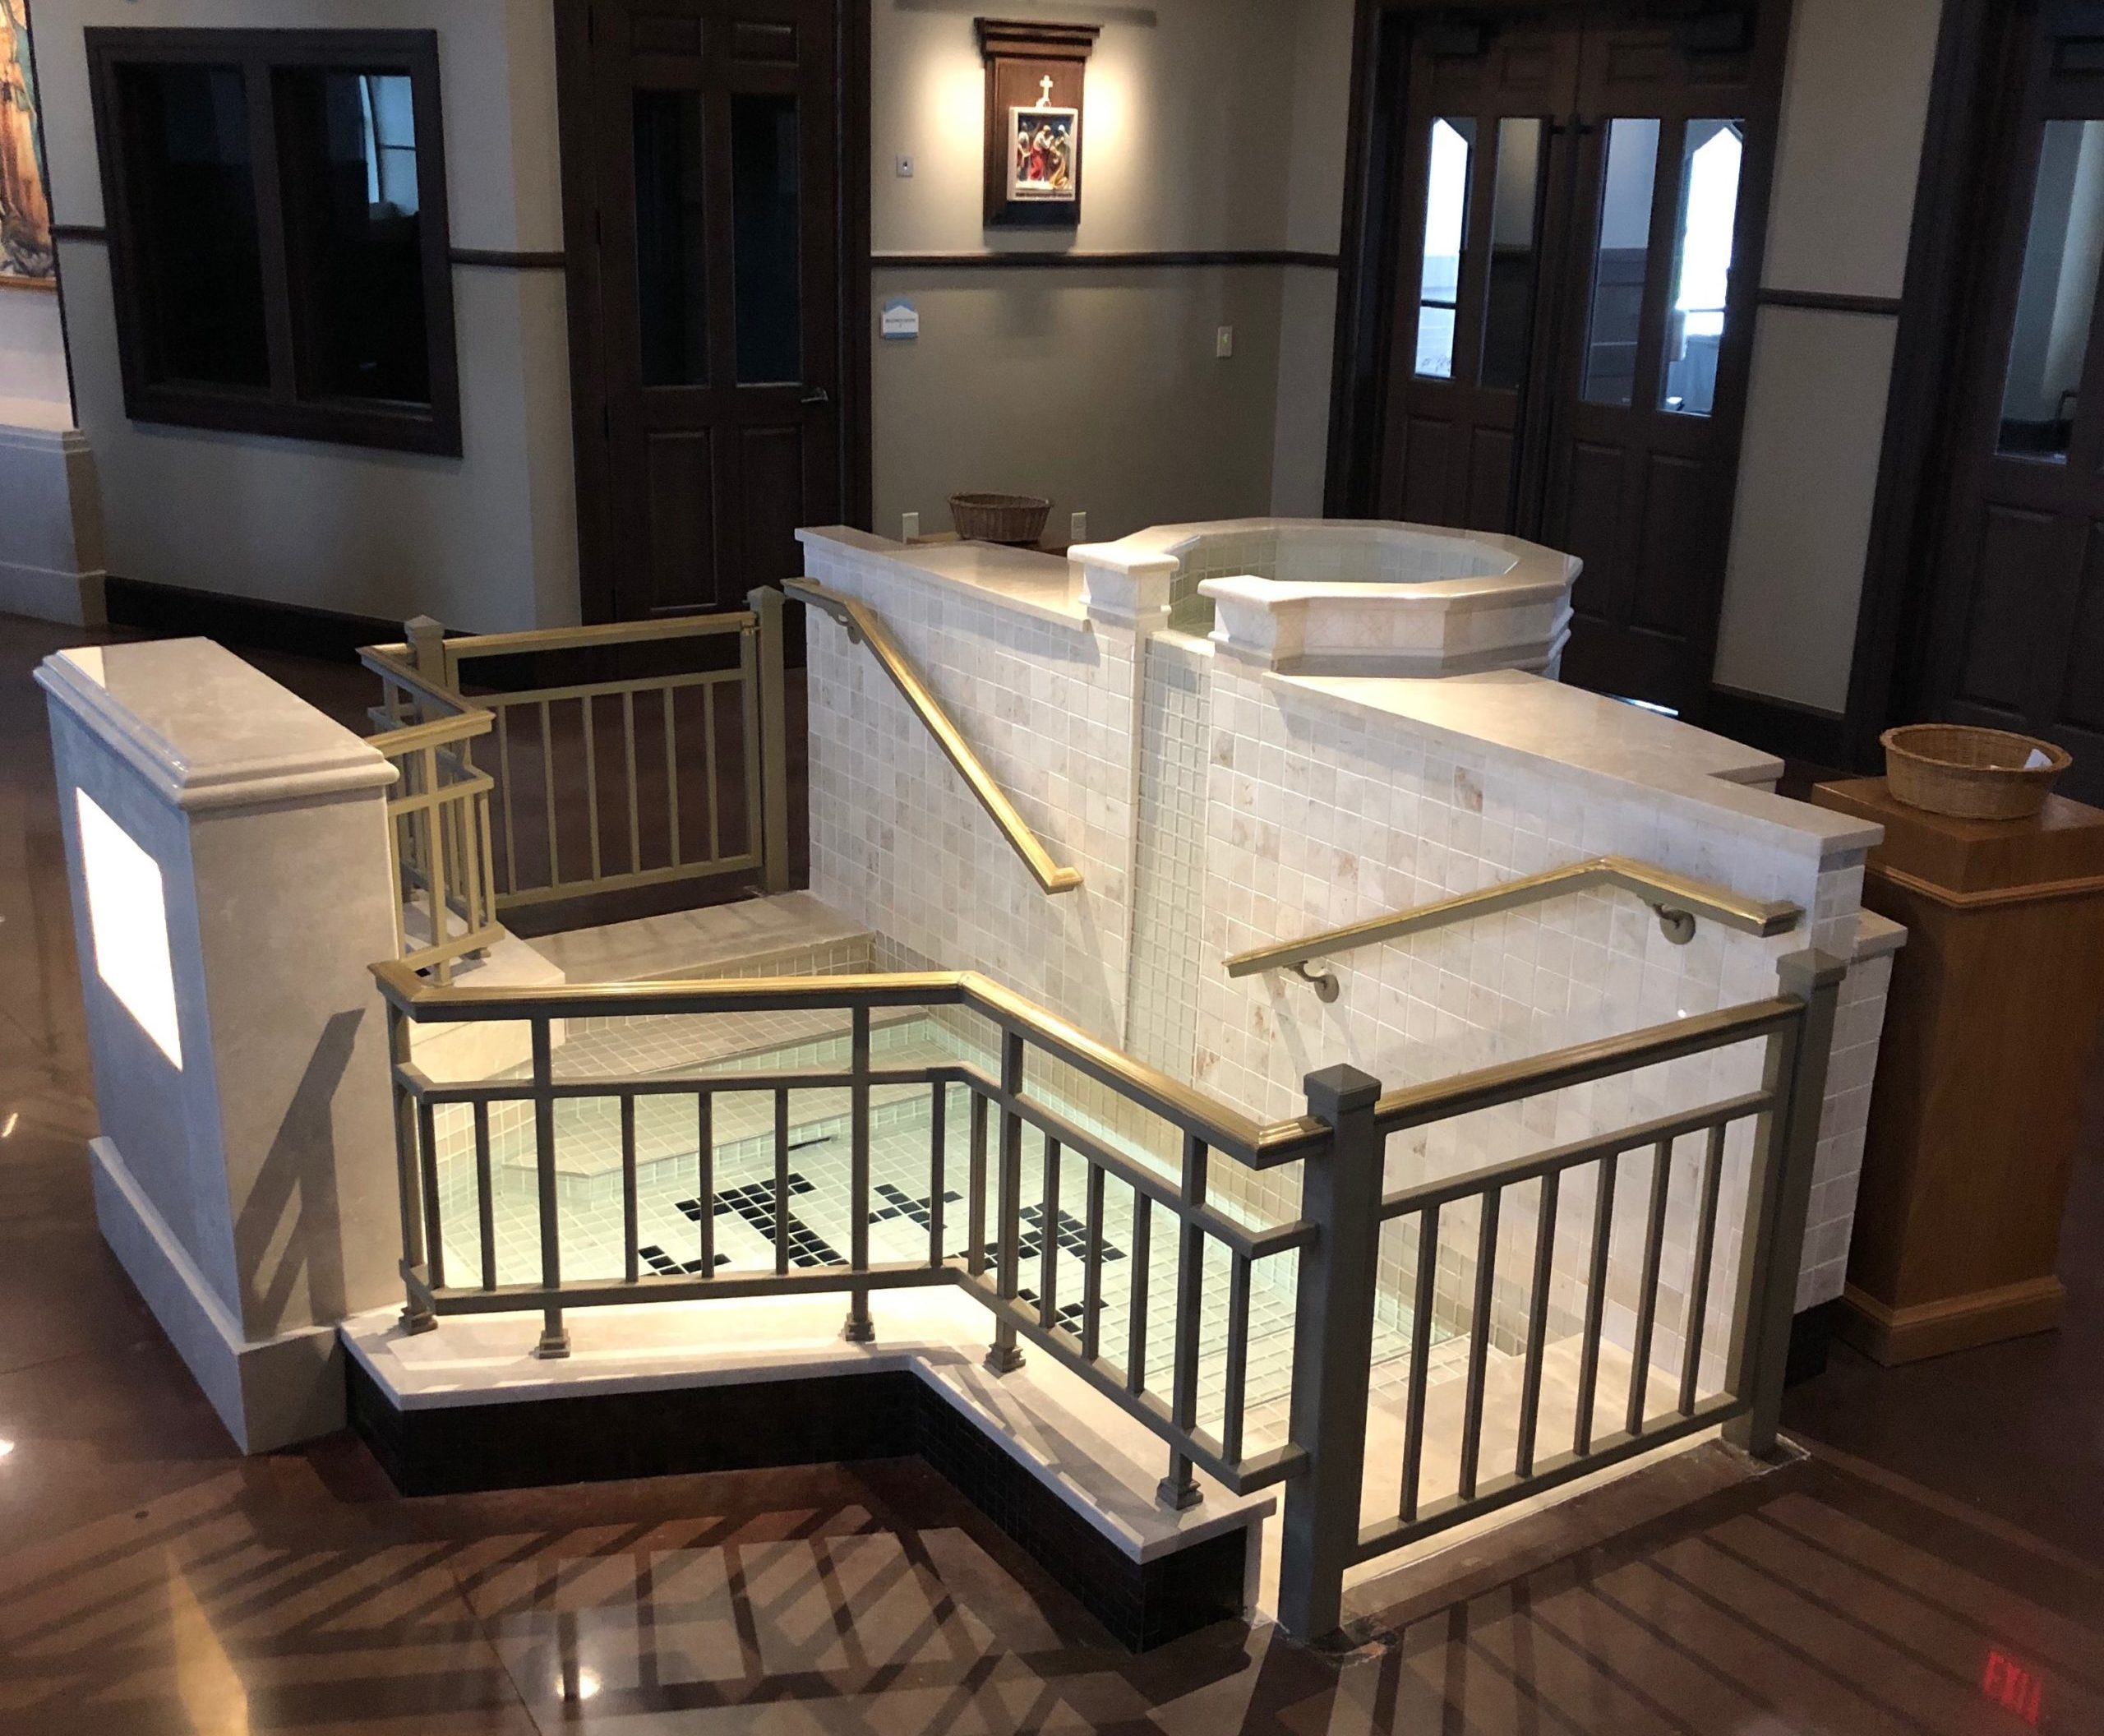 Immersion Baptismal Font with Built-in Descending and Ascending Steps and Upper Bowl with Spillway, Holy Spirit Church, Mustang, OK.